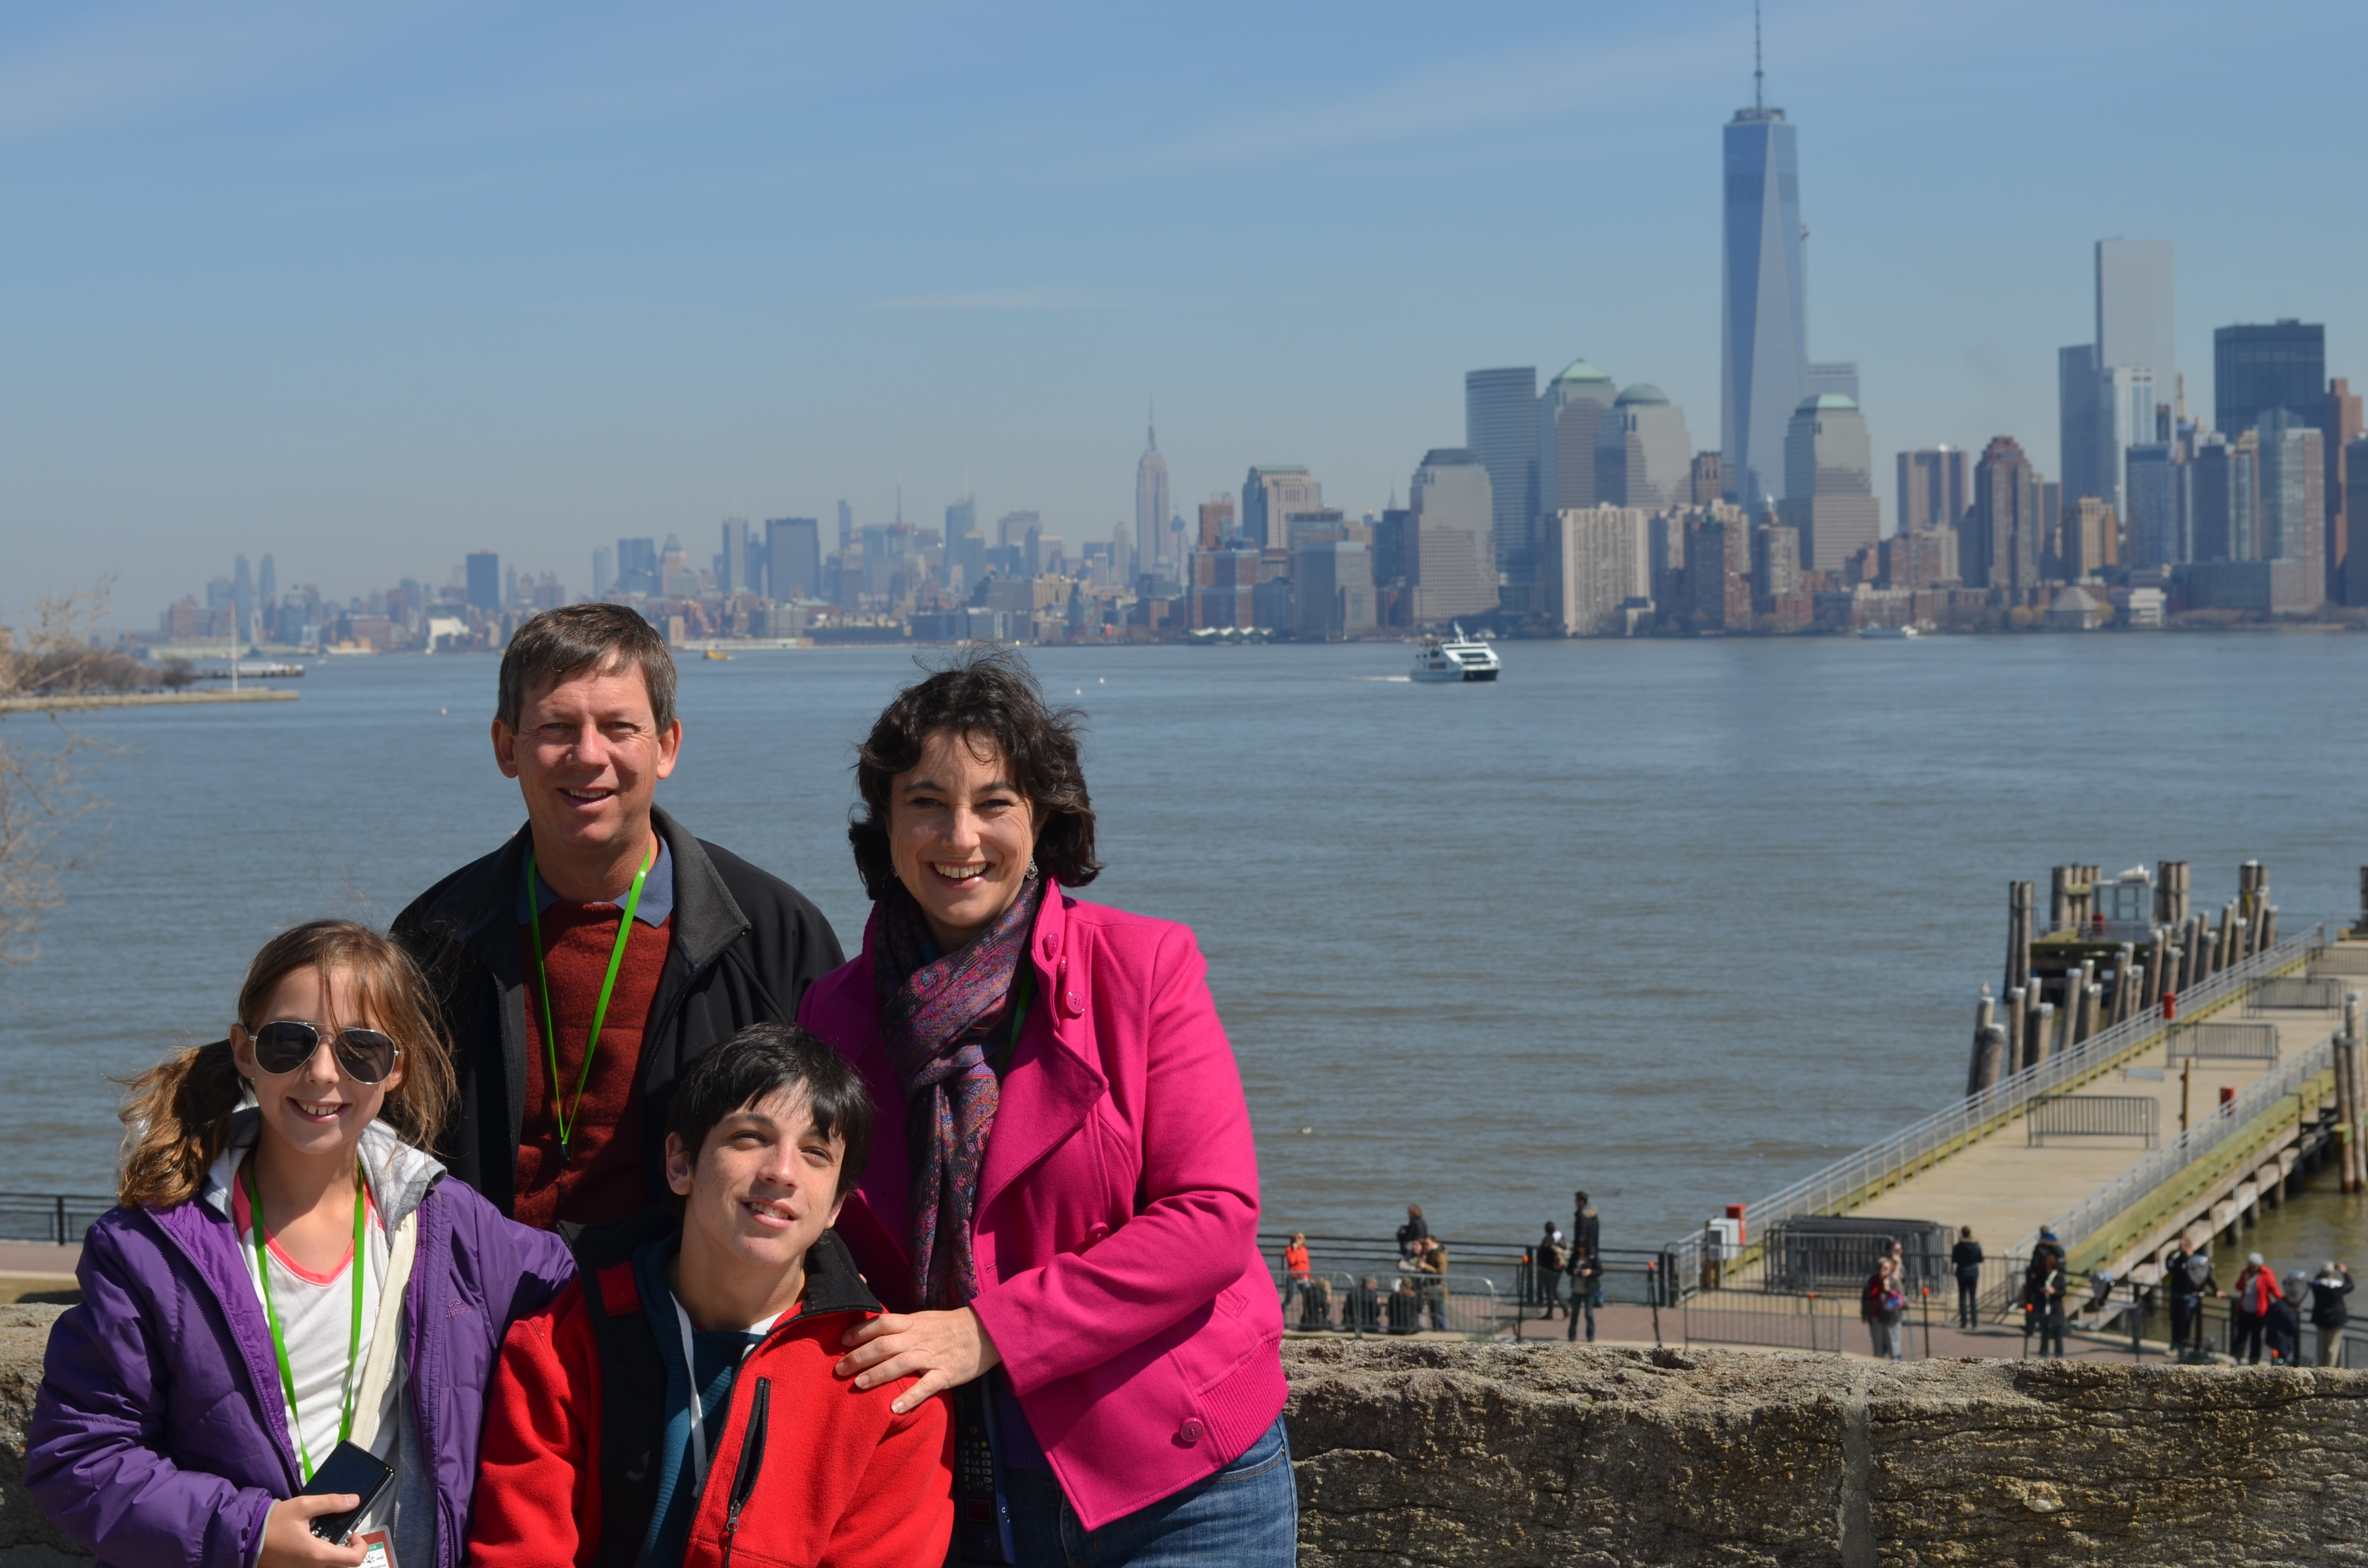 The Jones family on holiday in New York